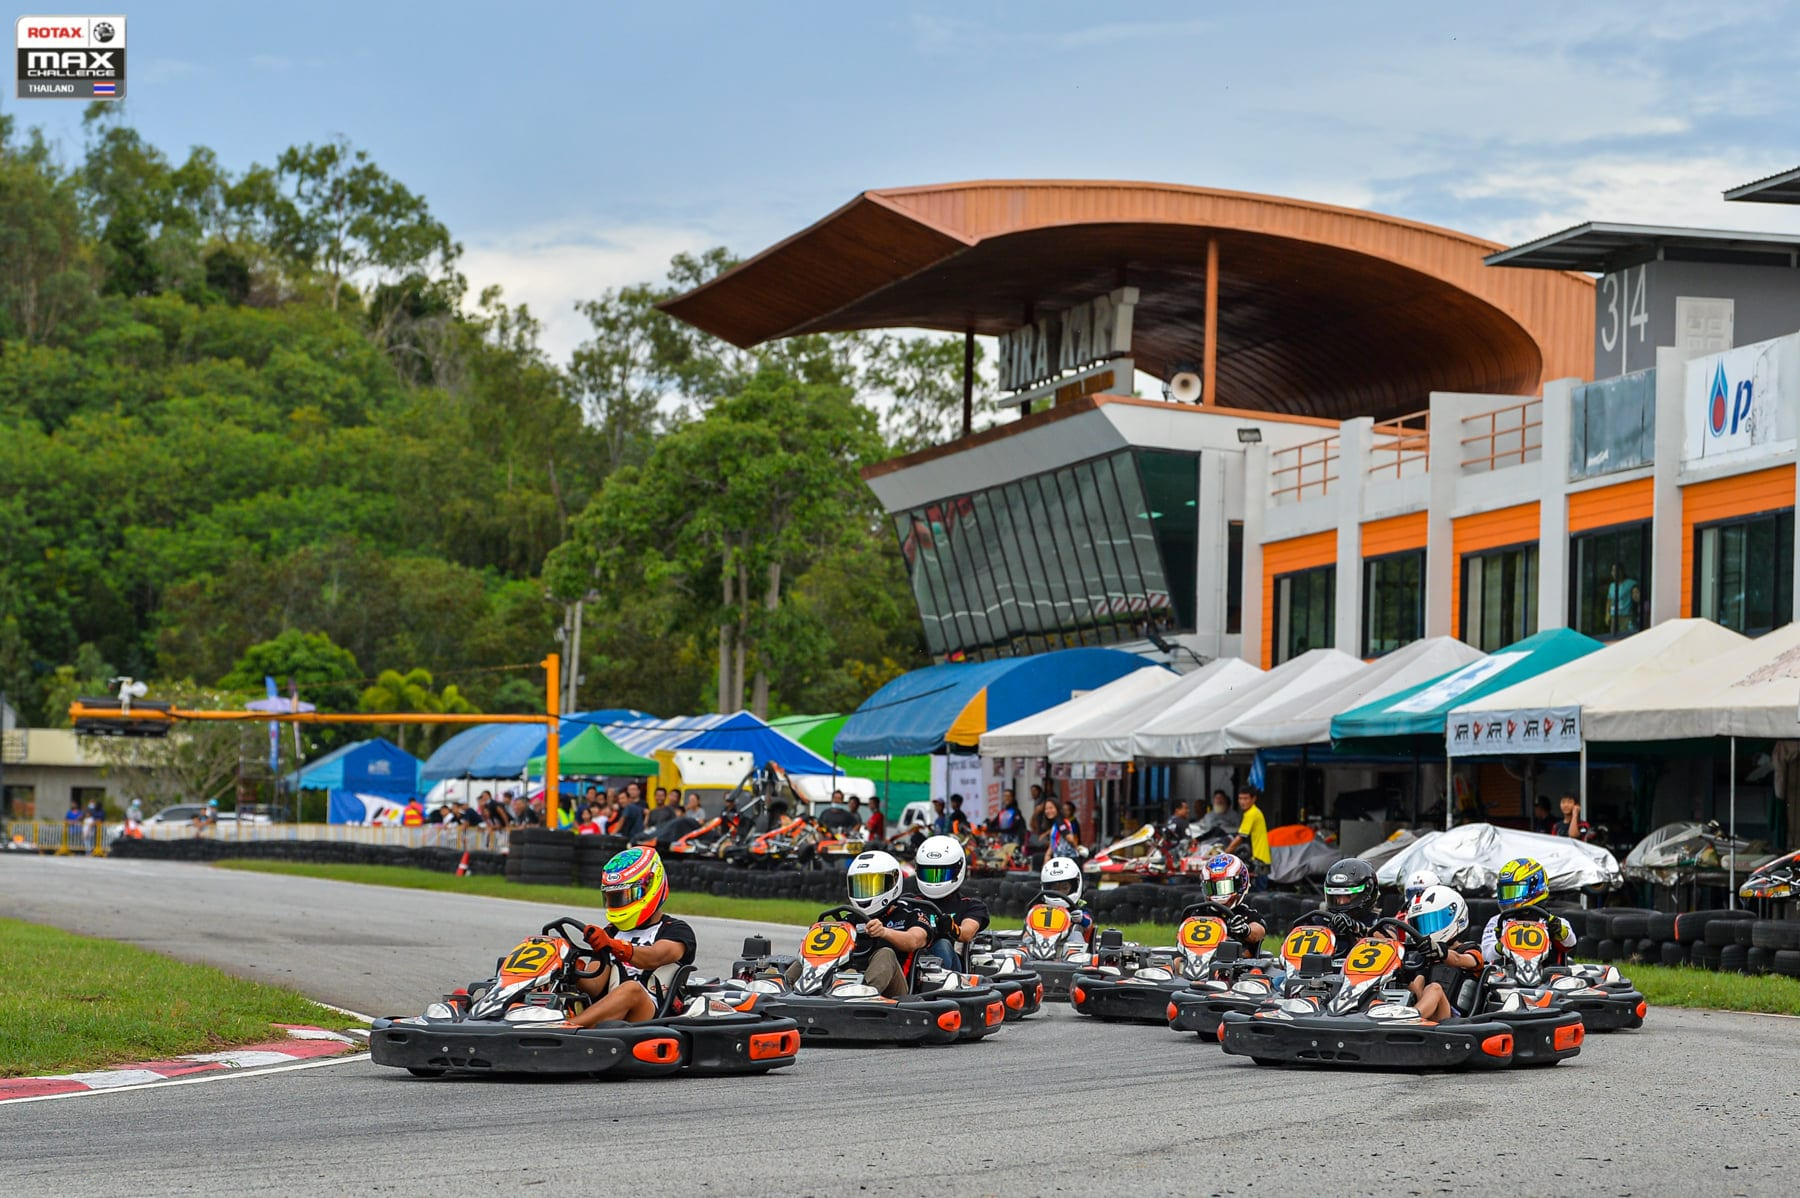 RMCTH R.4-5 Official Practice & BIRA Fun Kart.